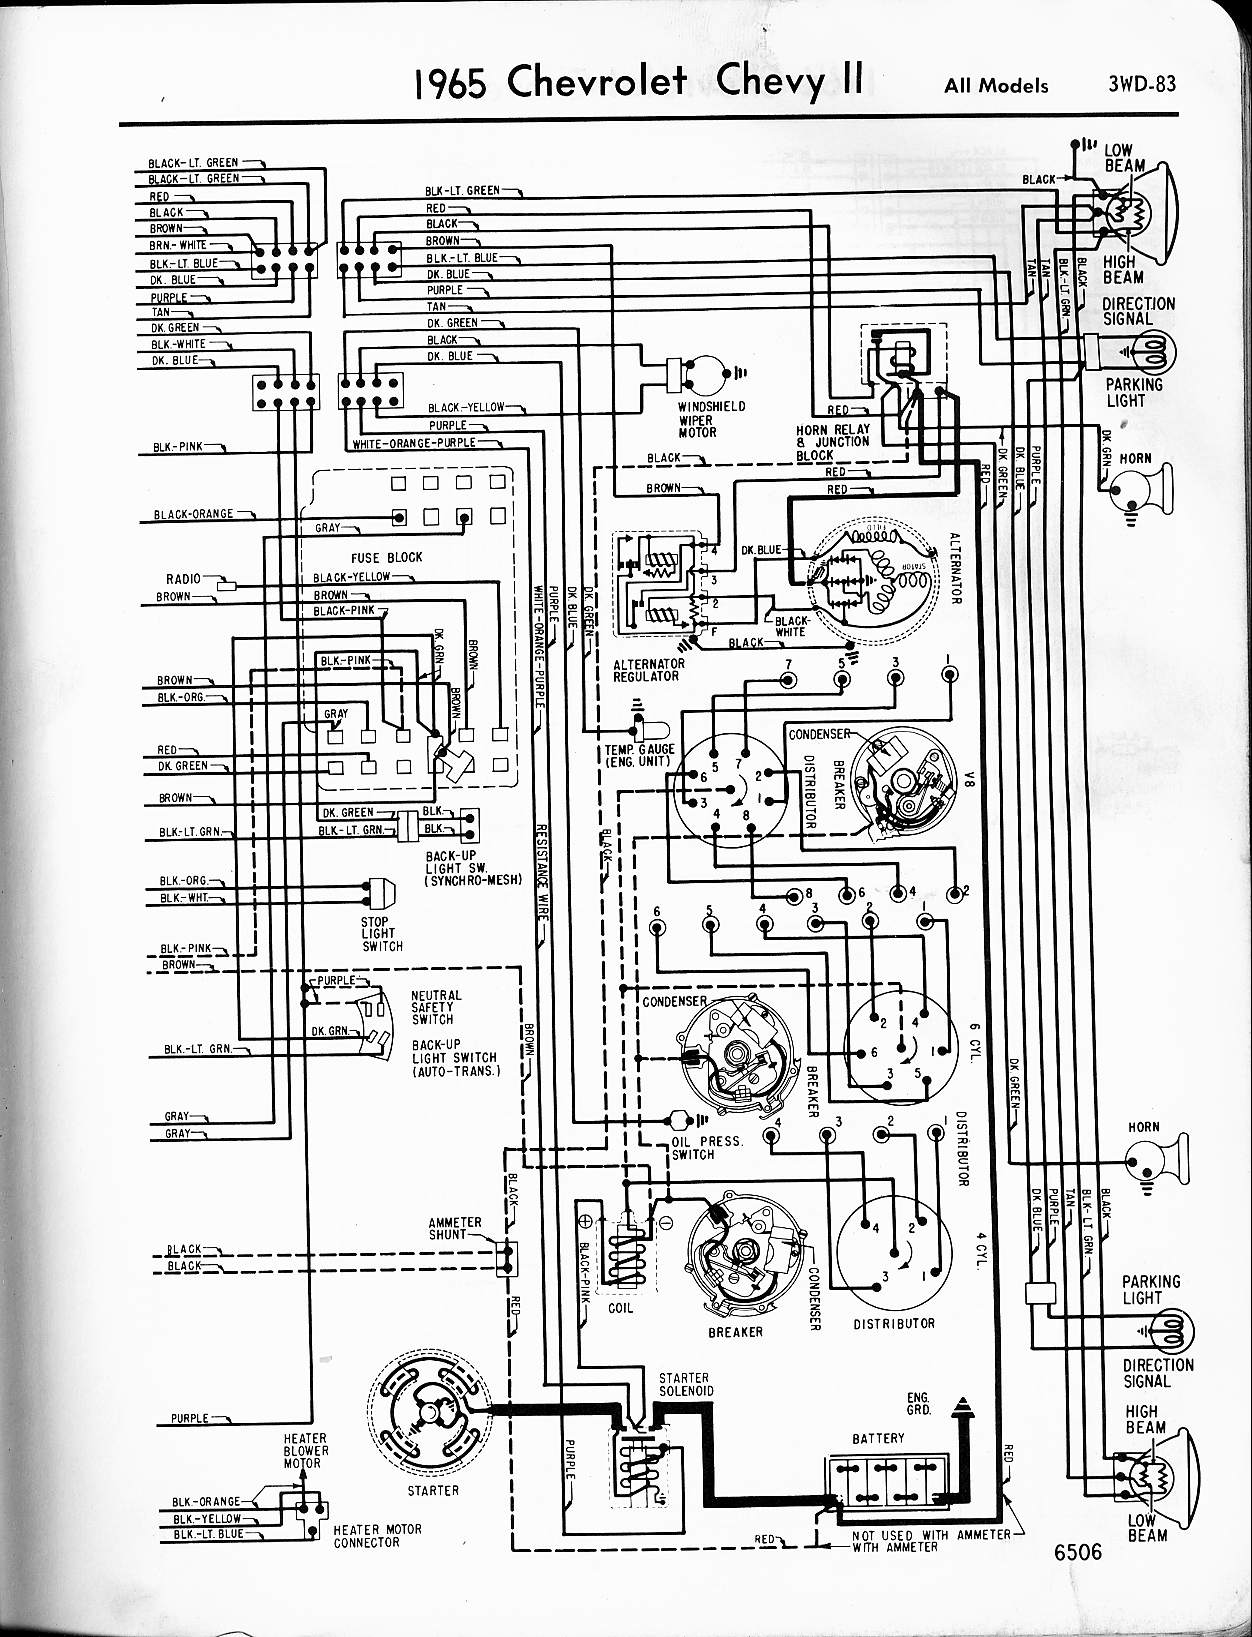 71 Caprice Wiring Diagram - wiring diagrams schematics